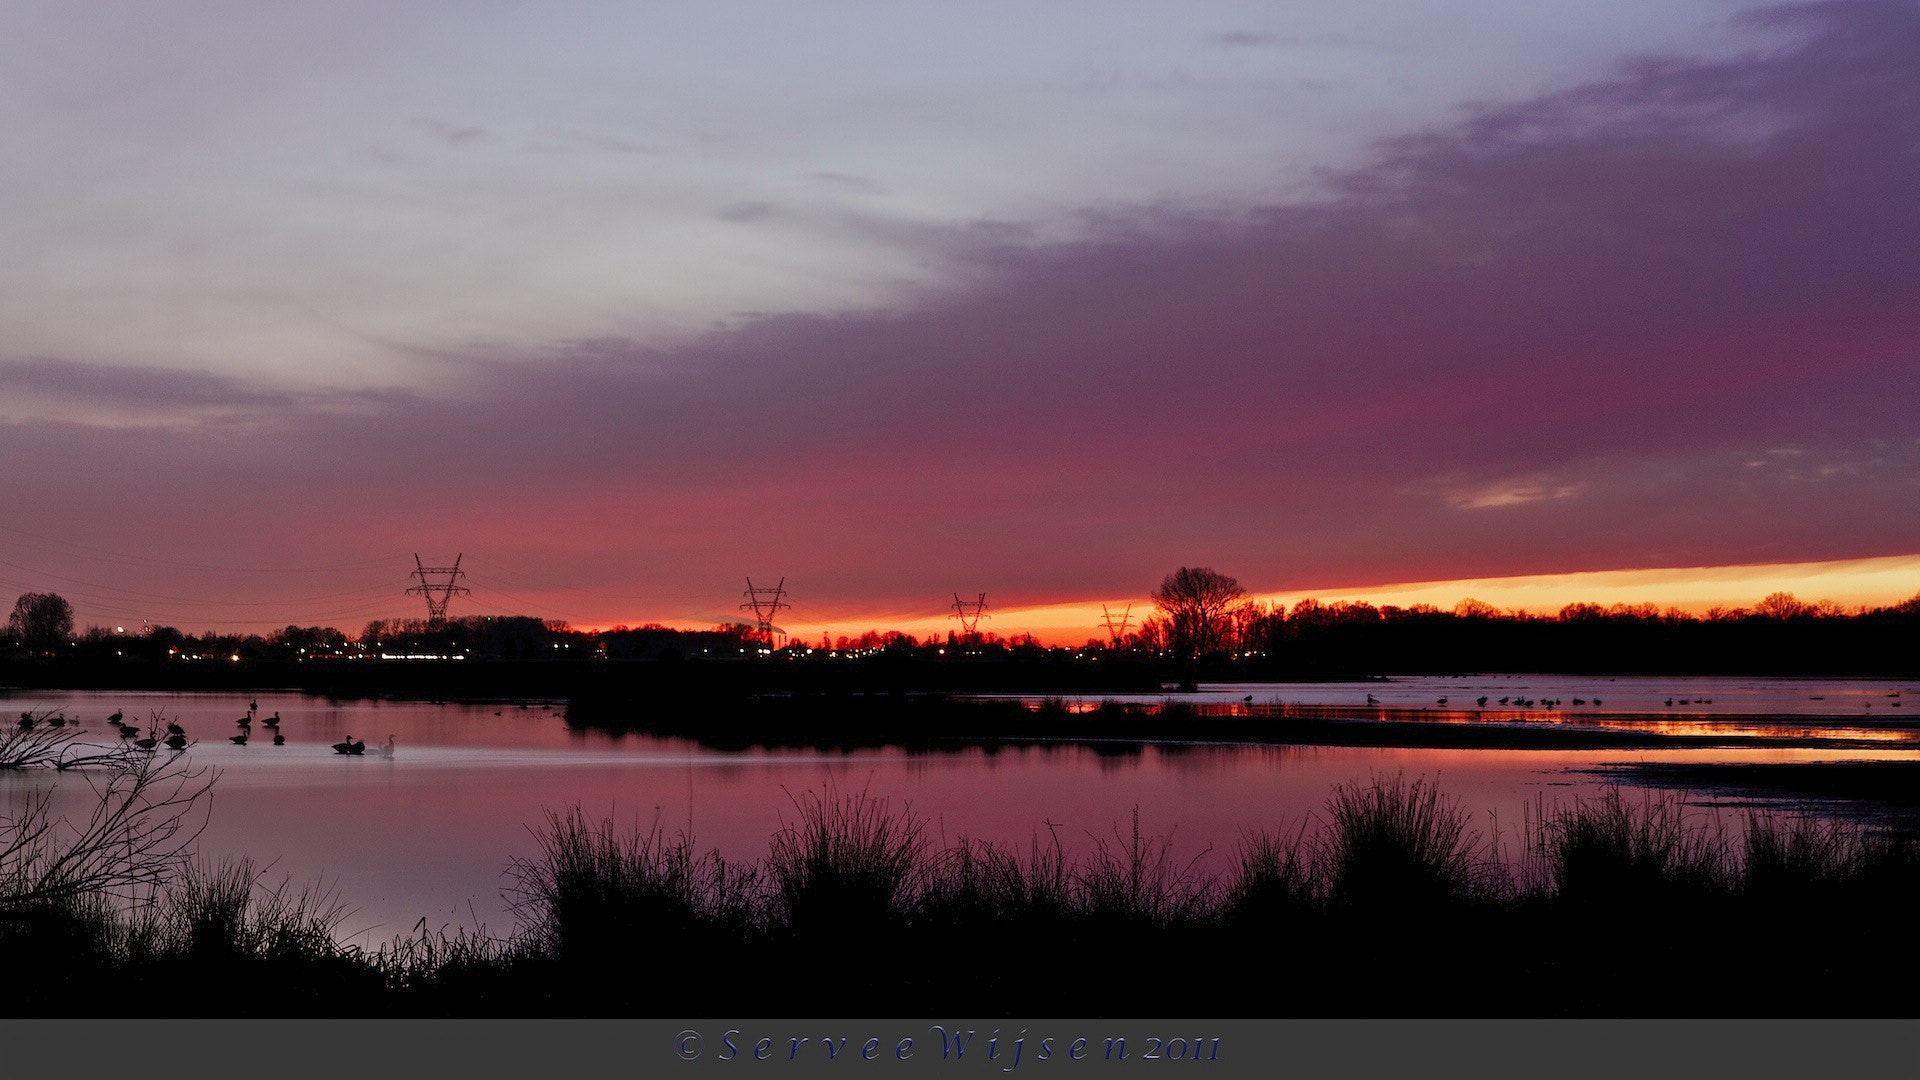 Photograph Sunset over the lake by Servee Wijsen on 500px